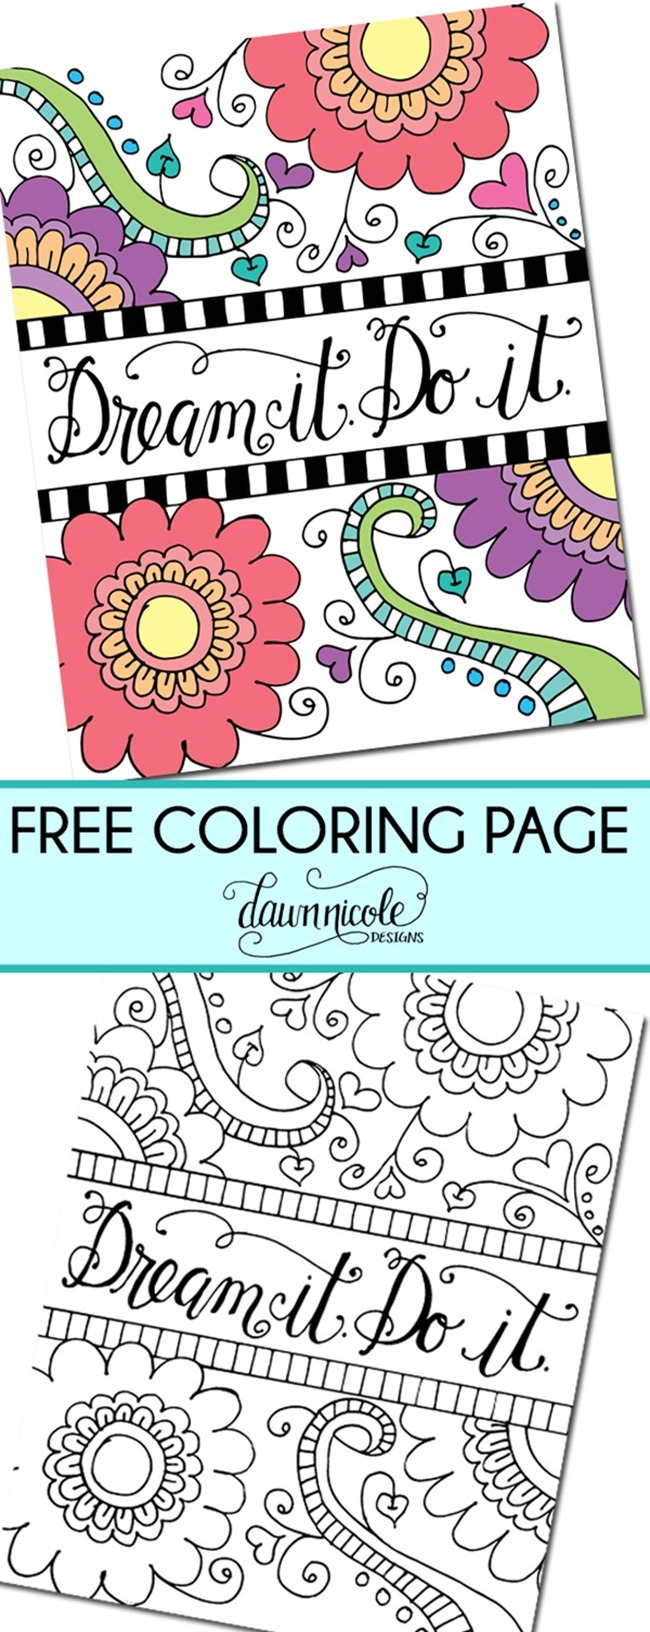 12 Inspiring Quote Coloring Pages for Adults - Dream It